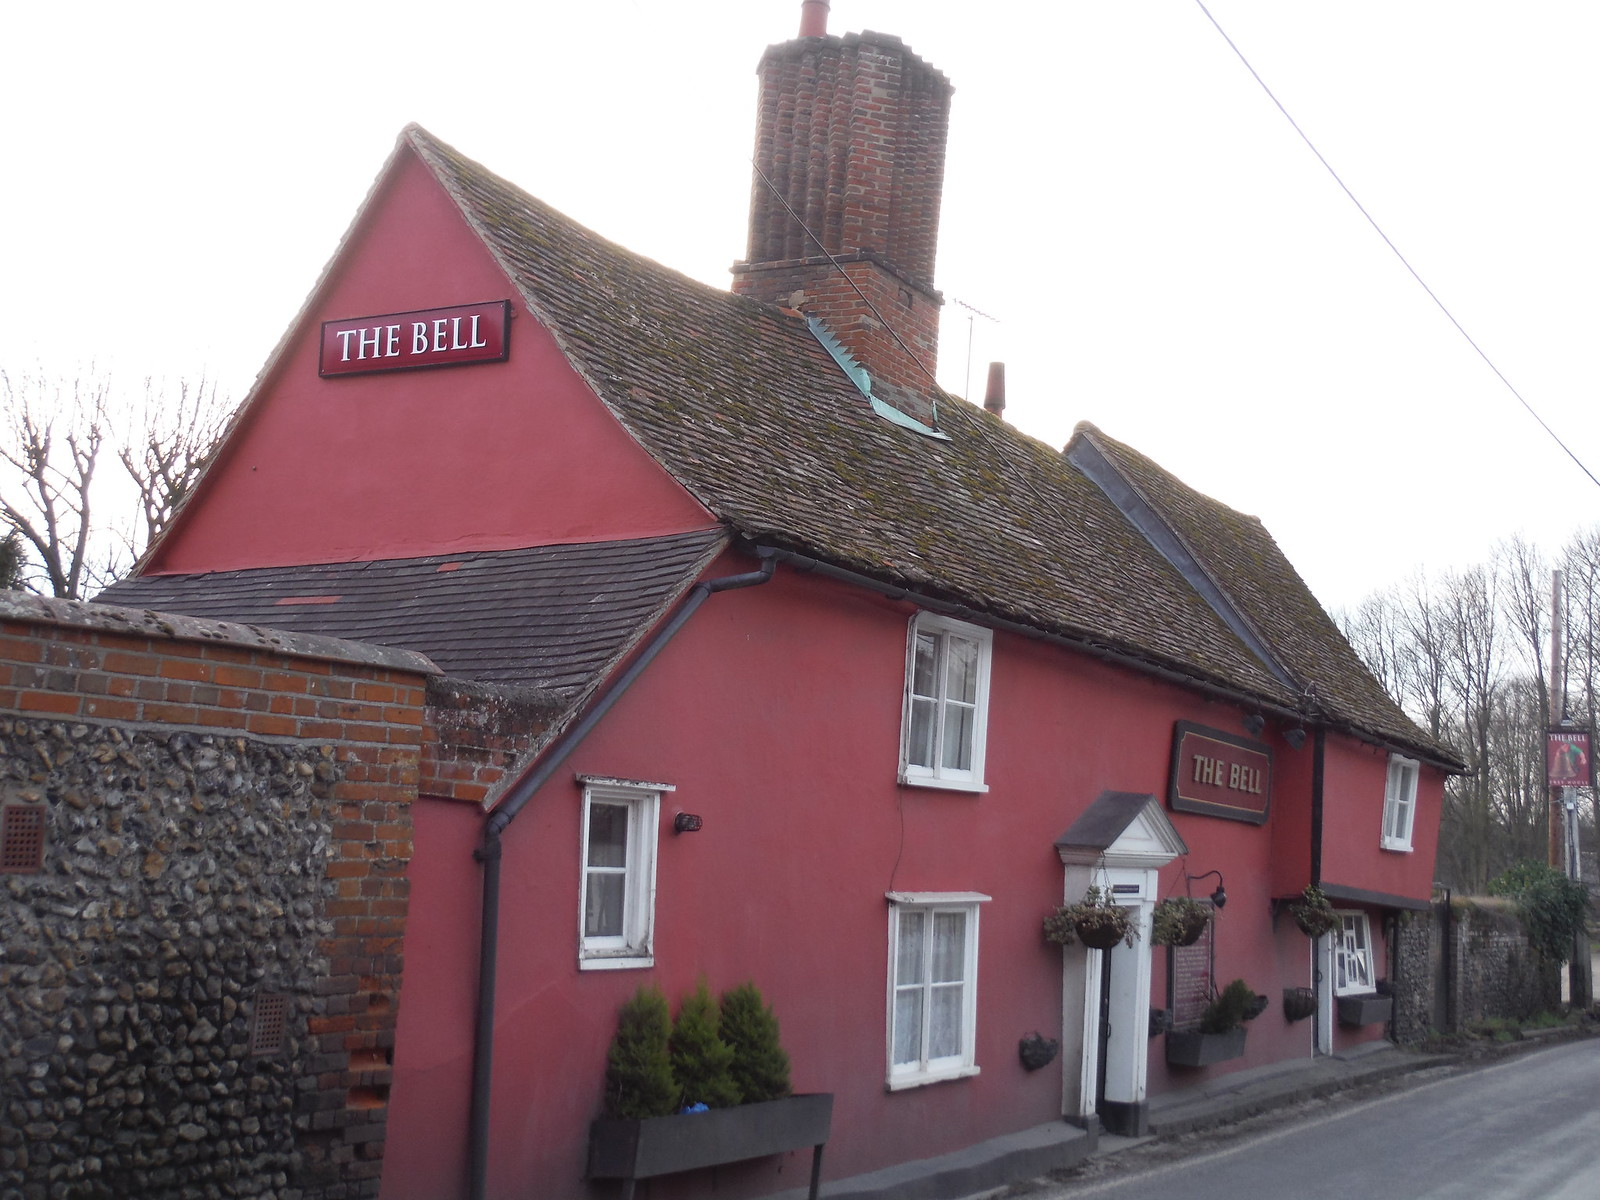 The Bell Inn, Wendens Ambo SWC Walk 116 Wendens Ambo [Audley End station] Circular